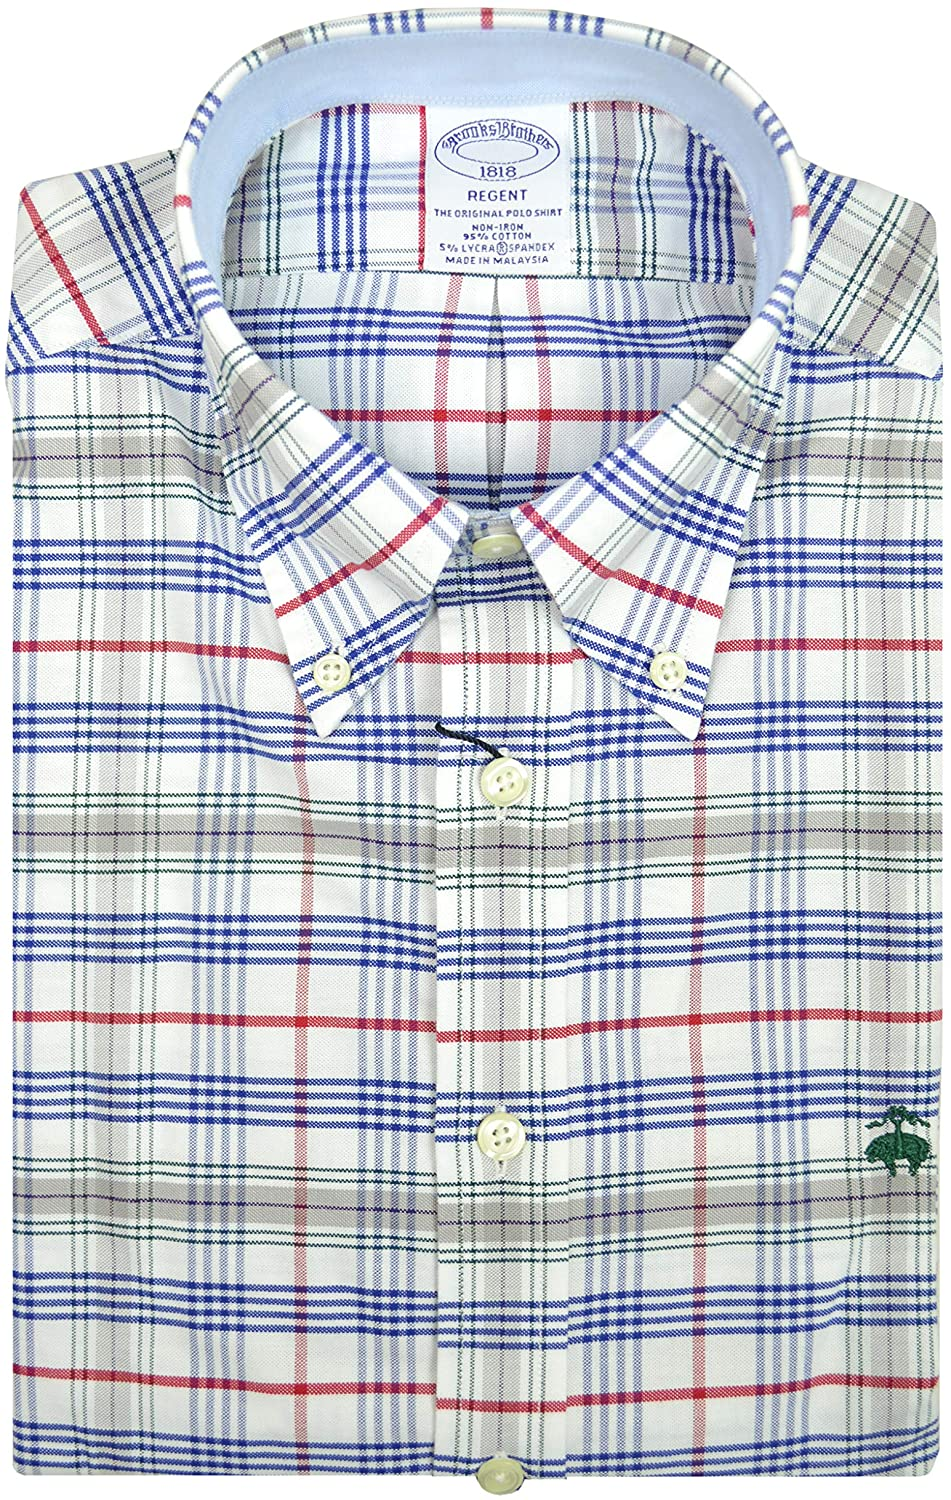 Brooks Brothers Mens Regent Fit All Cotton The Original Polo Button Down Oxford Shirt Multi Plaid